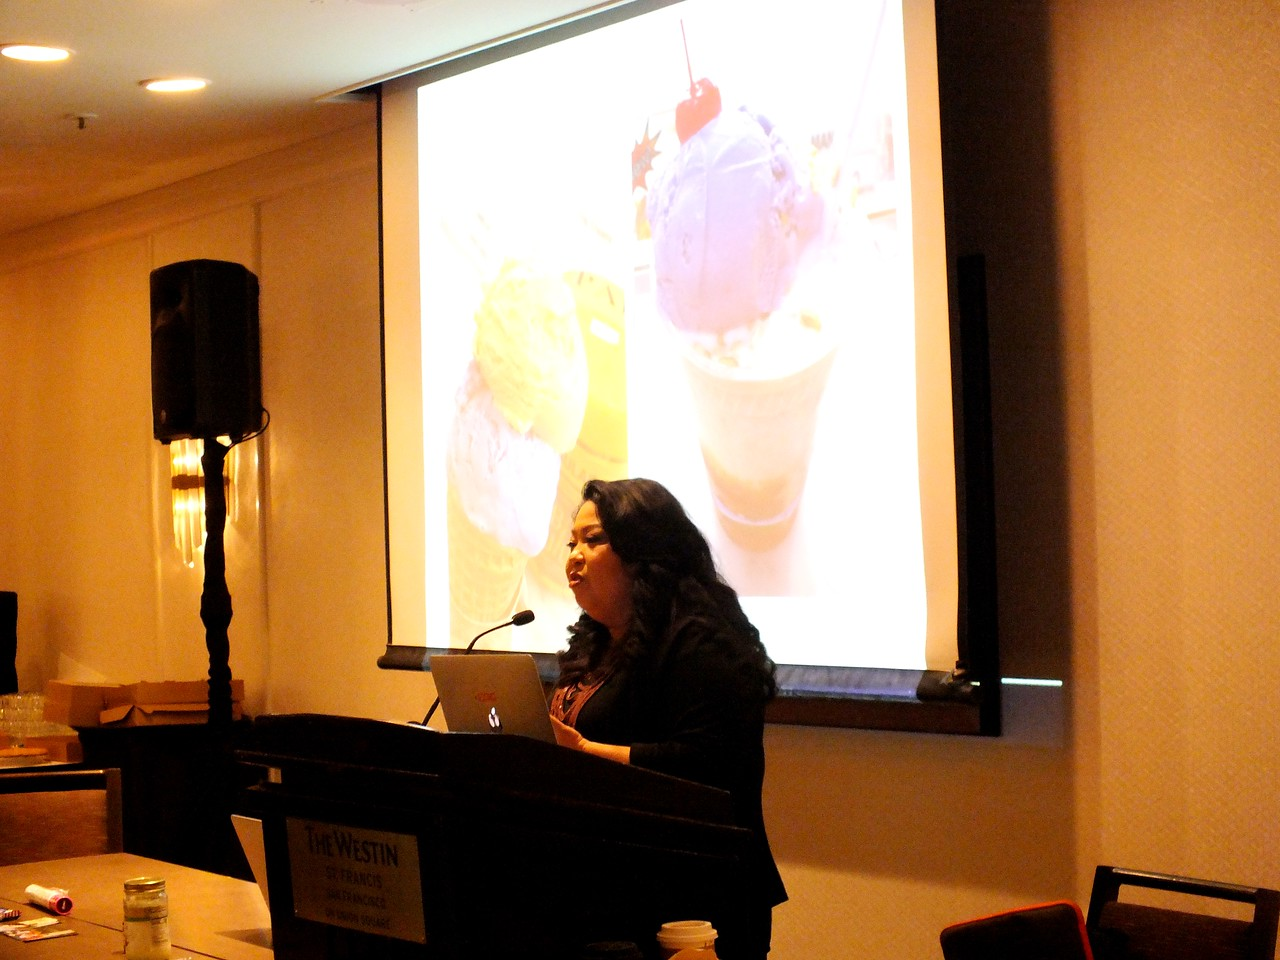 """San Francisco State University Professor, Dawn Mabalon chaired  """"The Filipino American Food Movement in the S.F. Bay Area"""" roundtable and included several local FilAm chefs and tasty samples of their work, including Mabalon's own Ube cupcakes."""